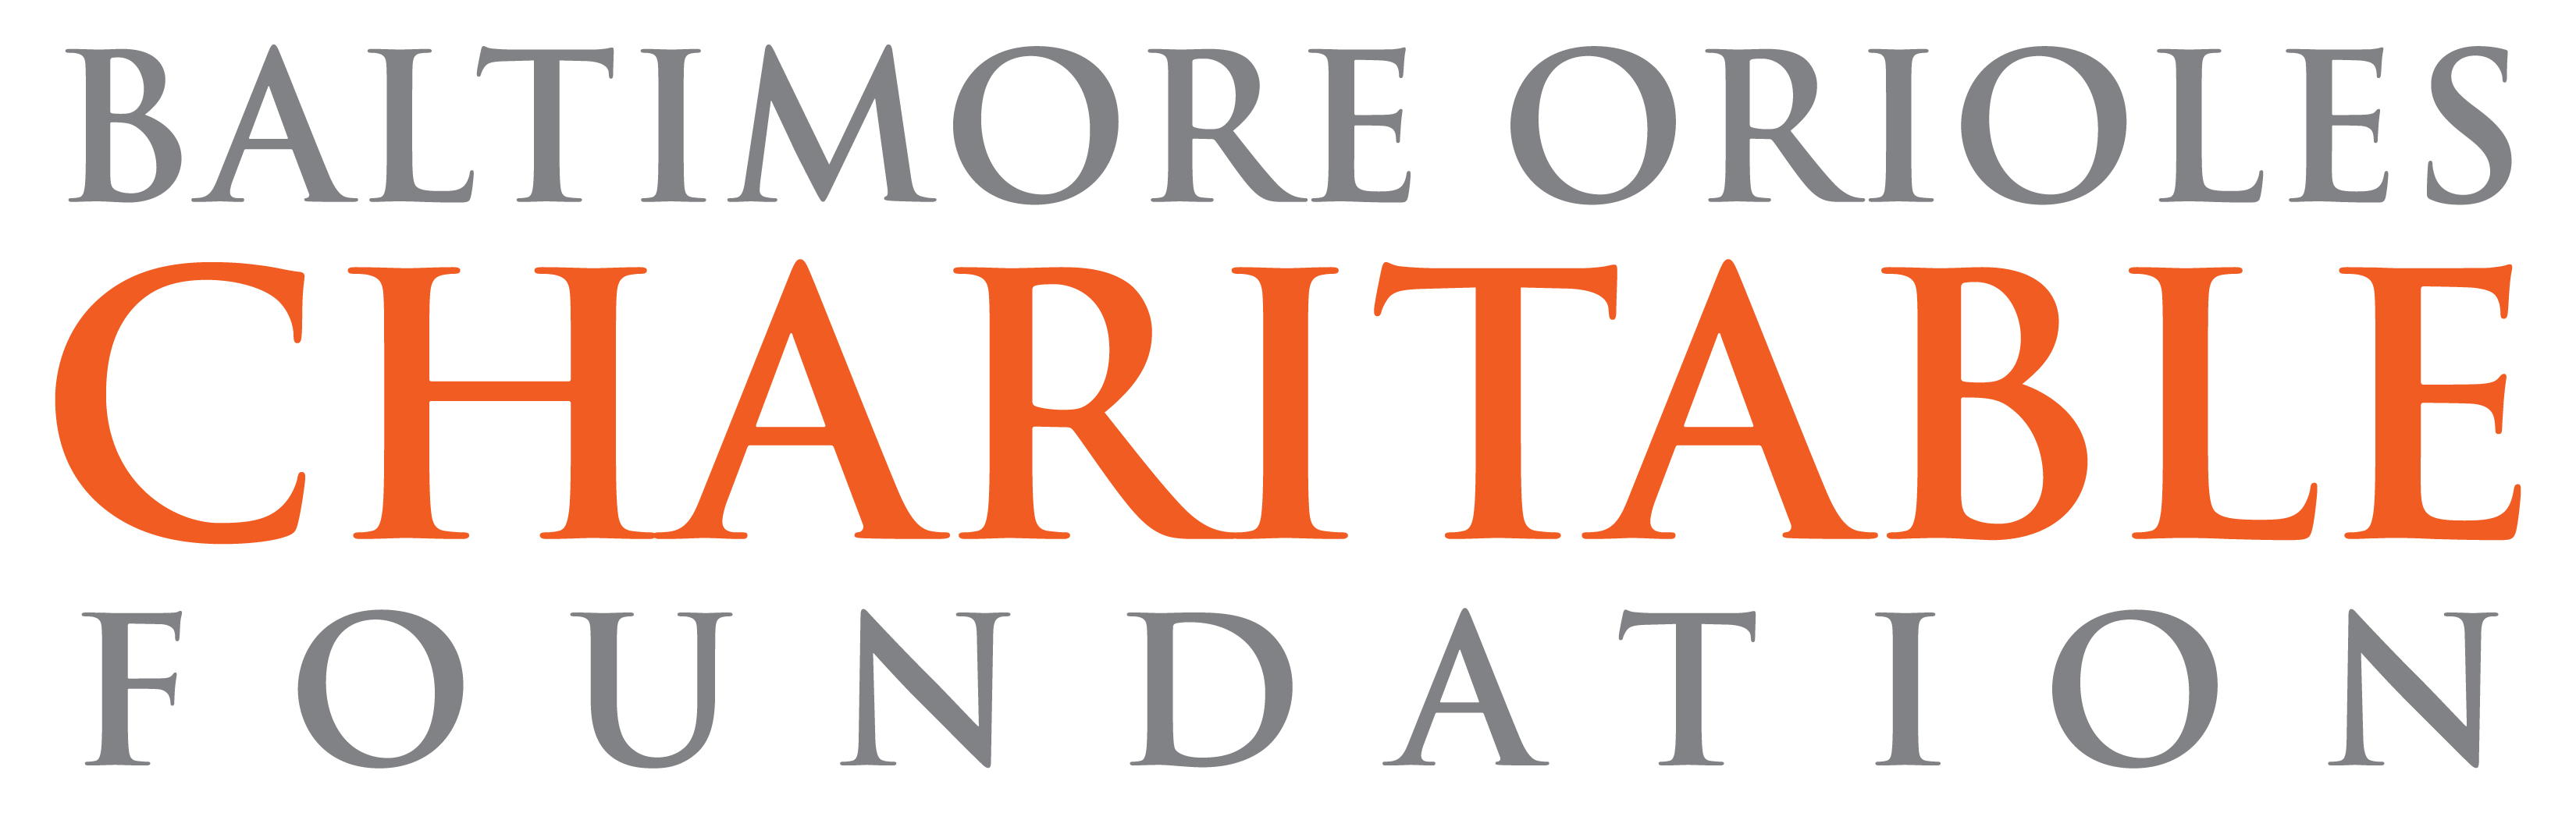 Baltimore Orioles Charitable Foundation